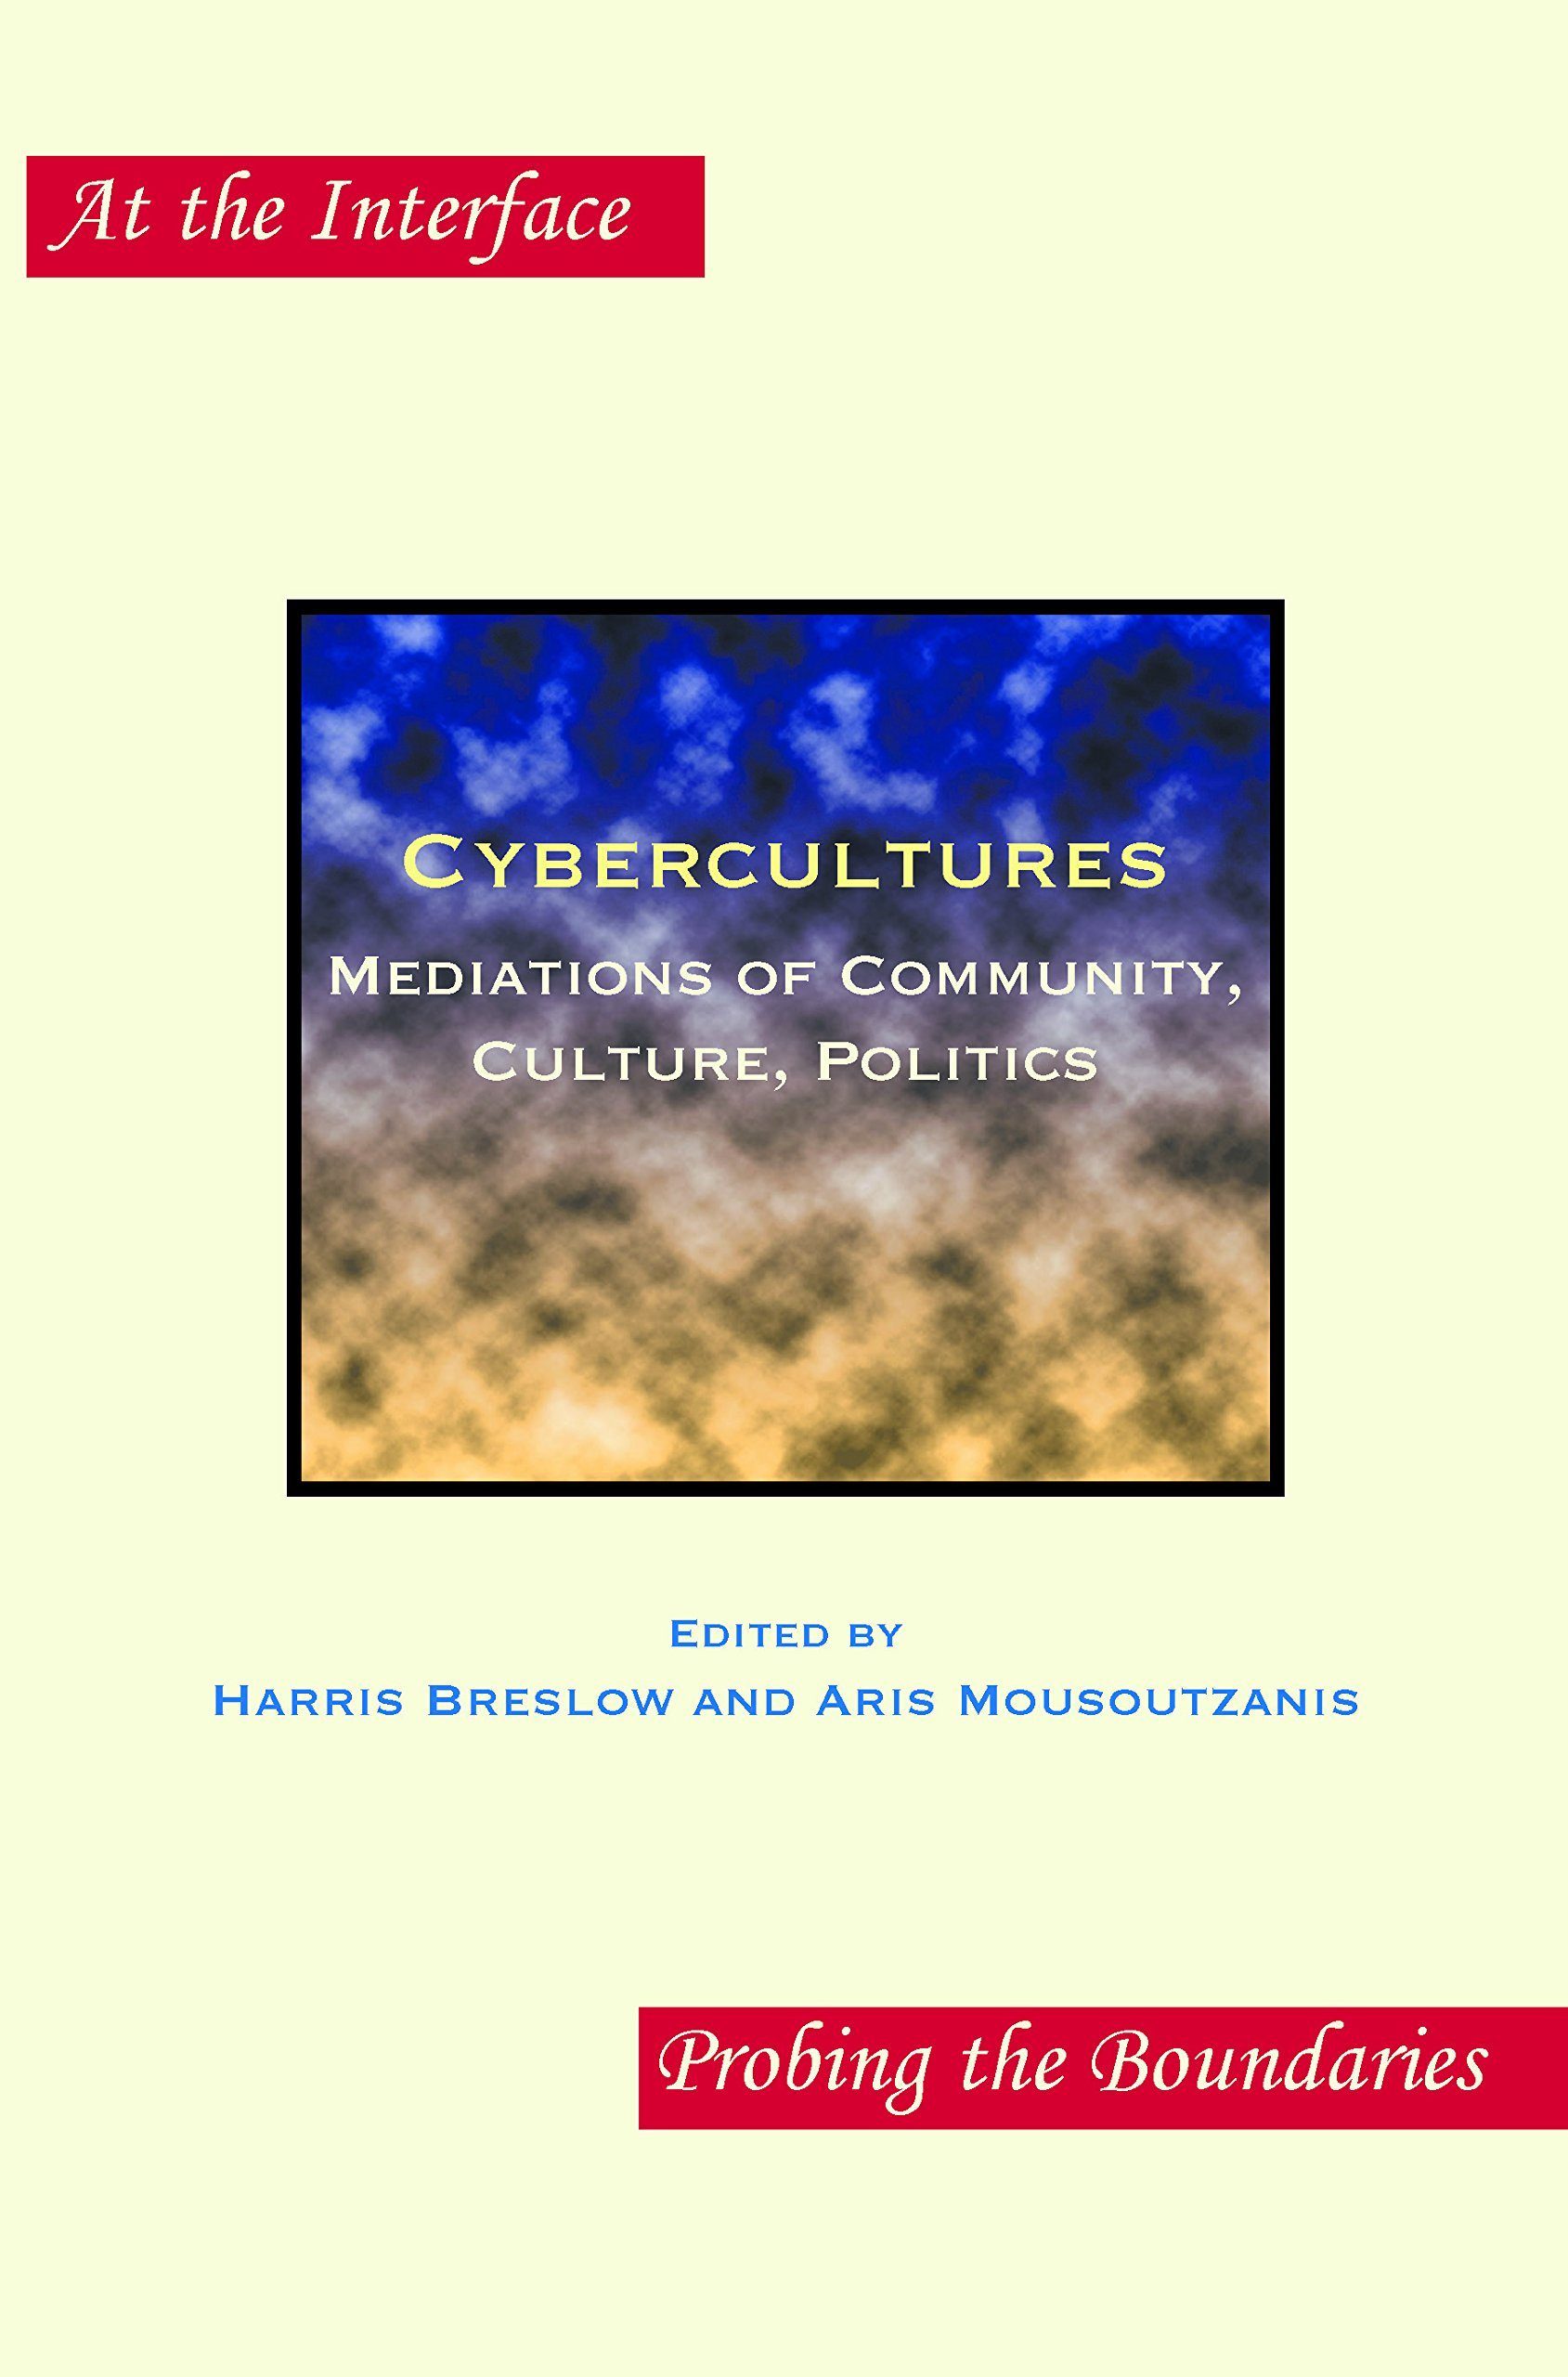 Cybercultures: Mediations of Community, Culture, Politics (At the Interface/Probing the Boundaries) pdf